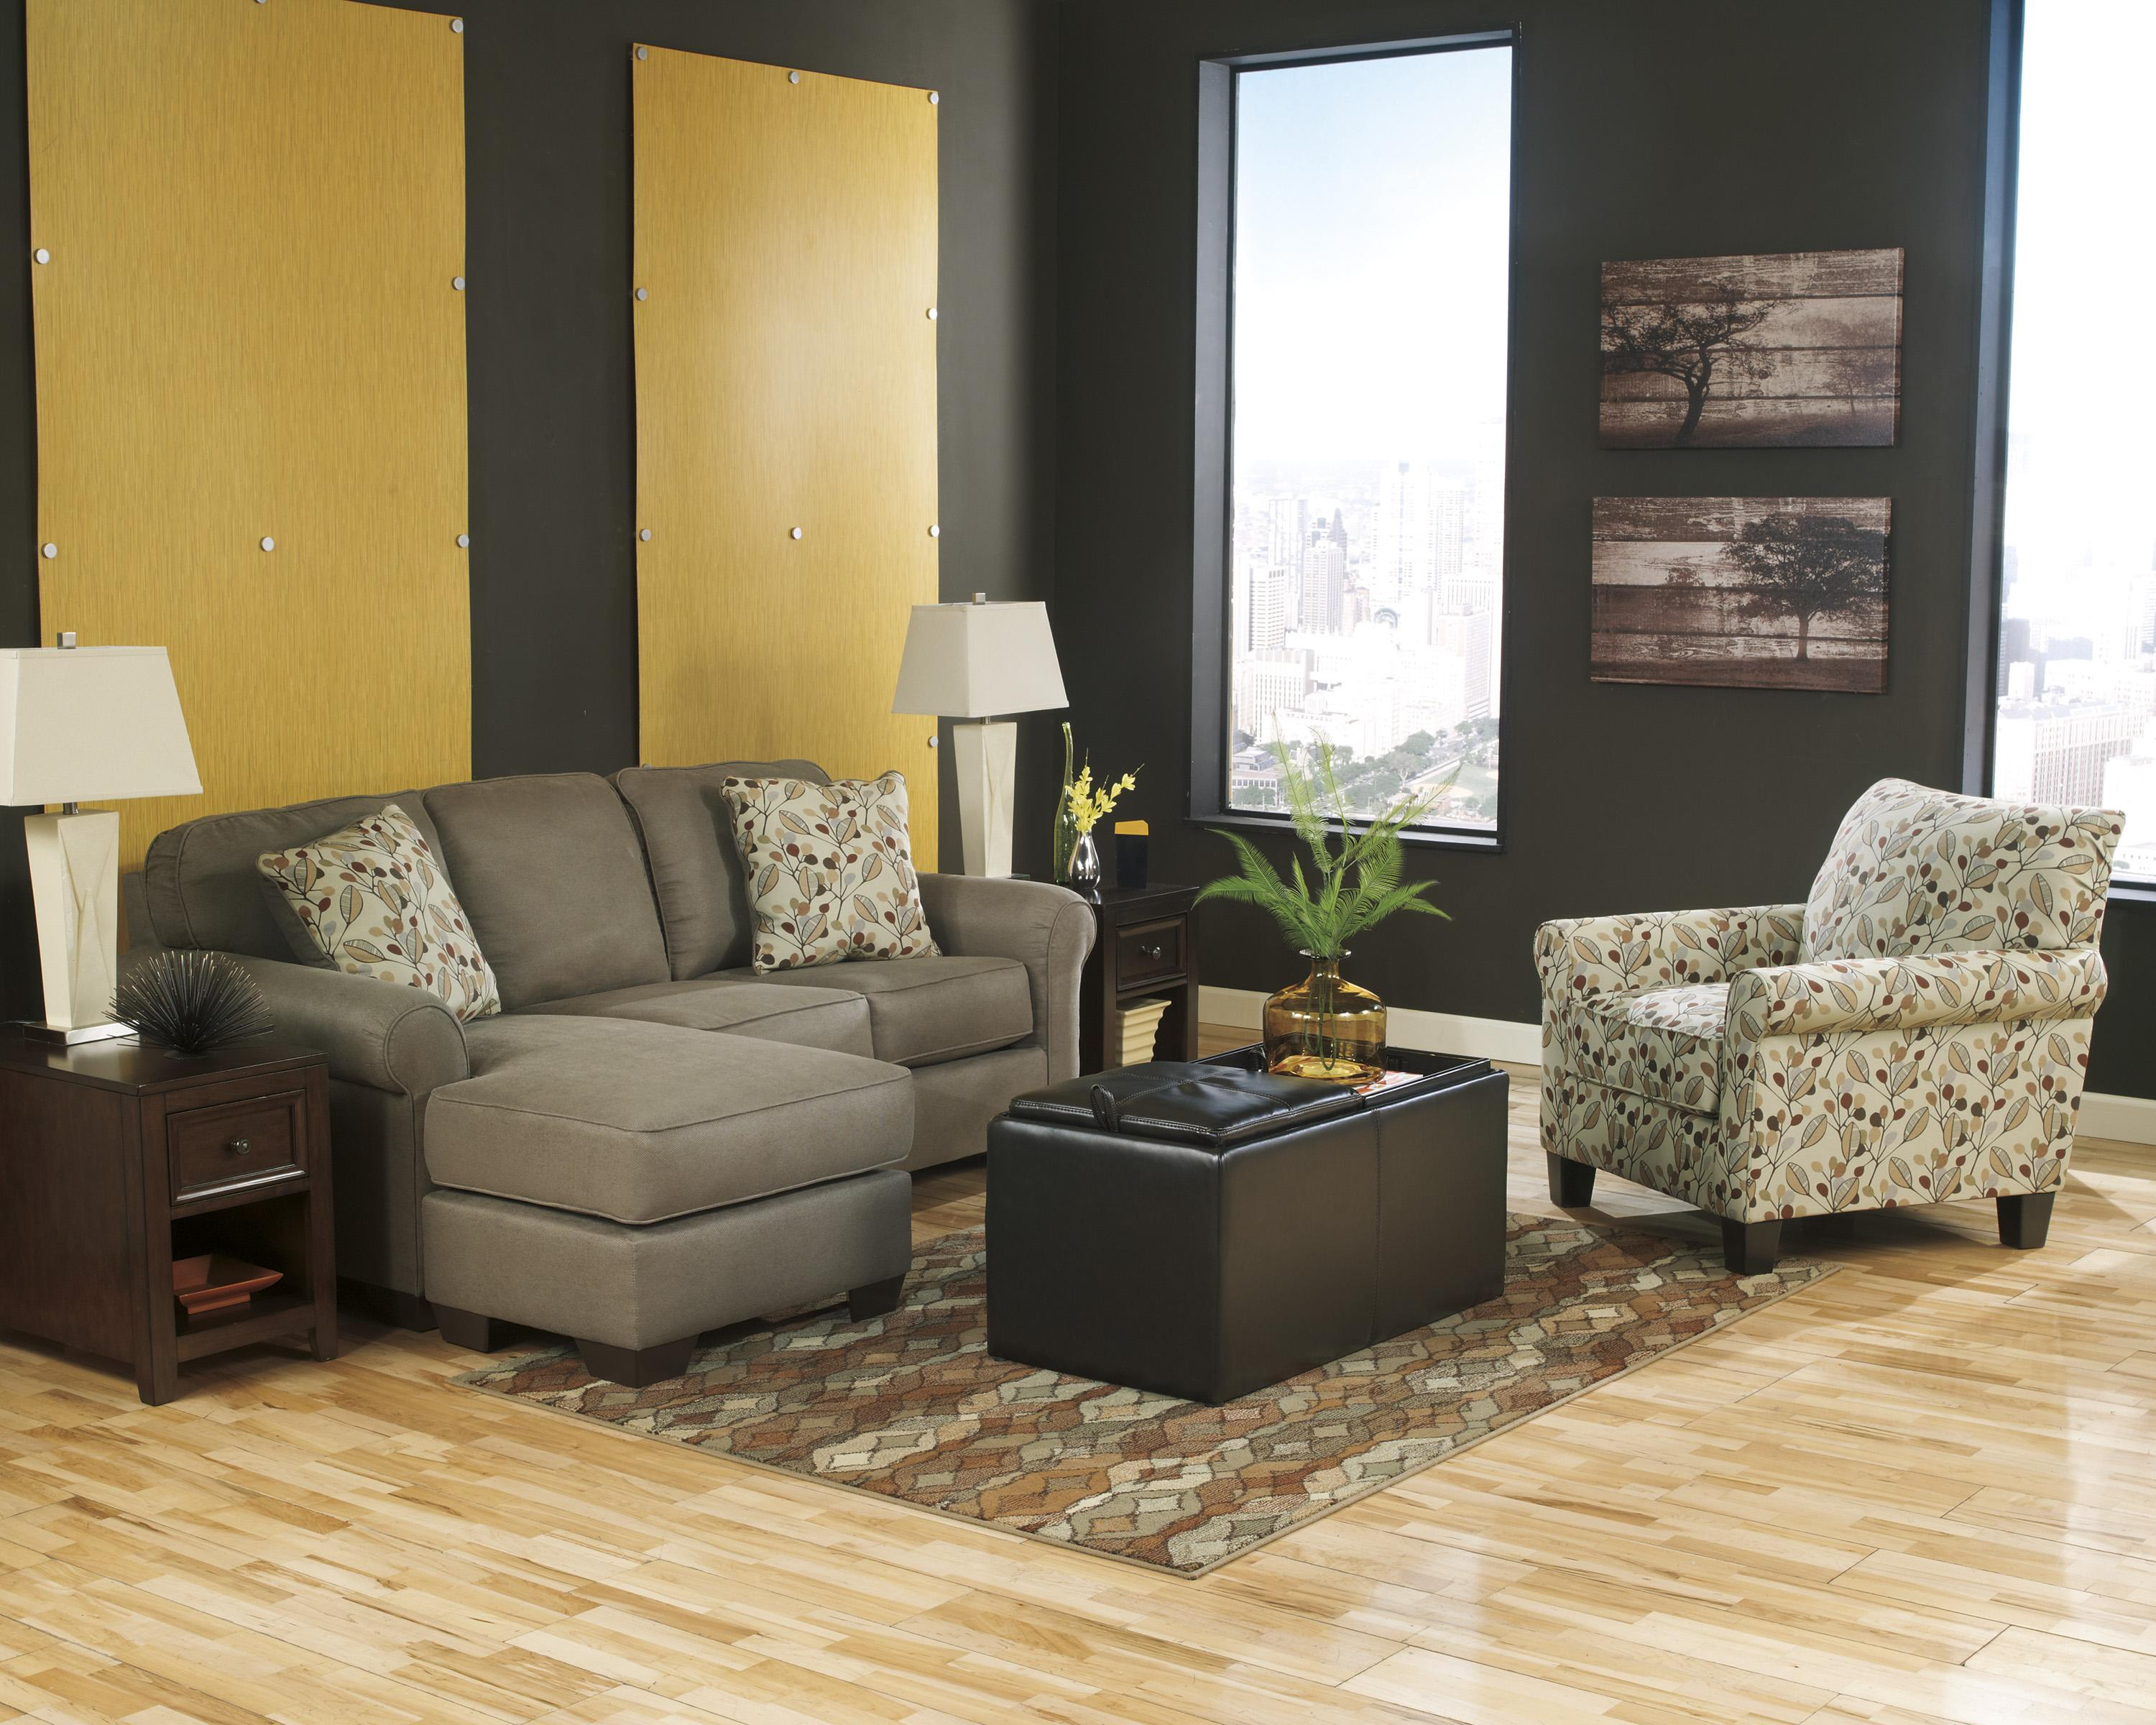 Benchcraft Danely - Dusk Stationary Living Room Group - Item Number: 35500 Living Room Group 2